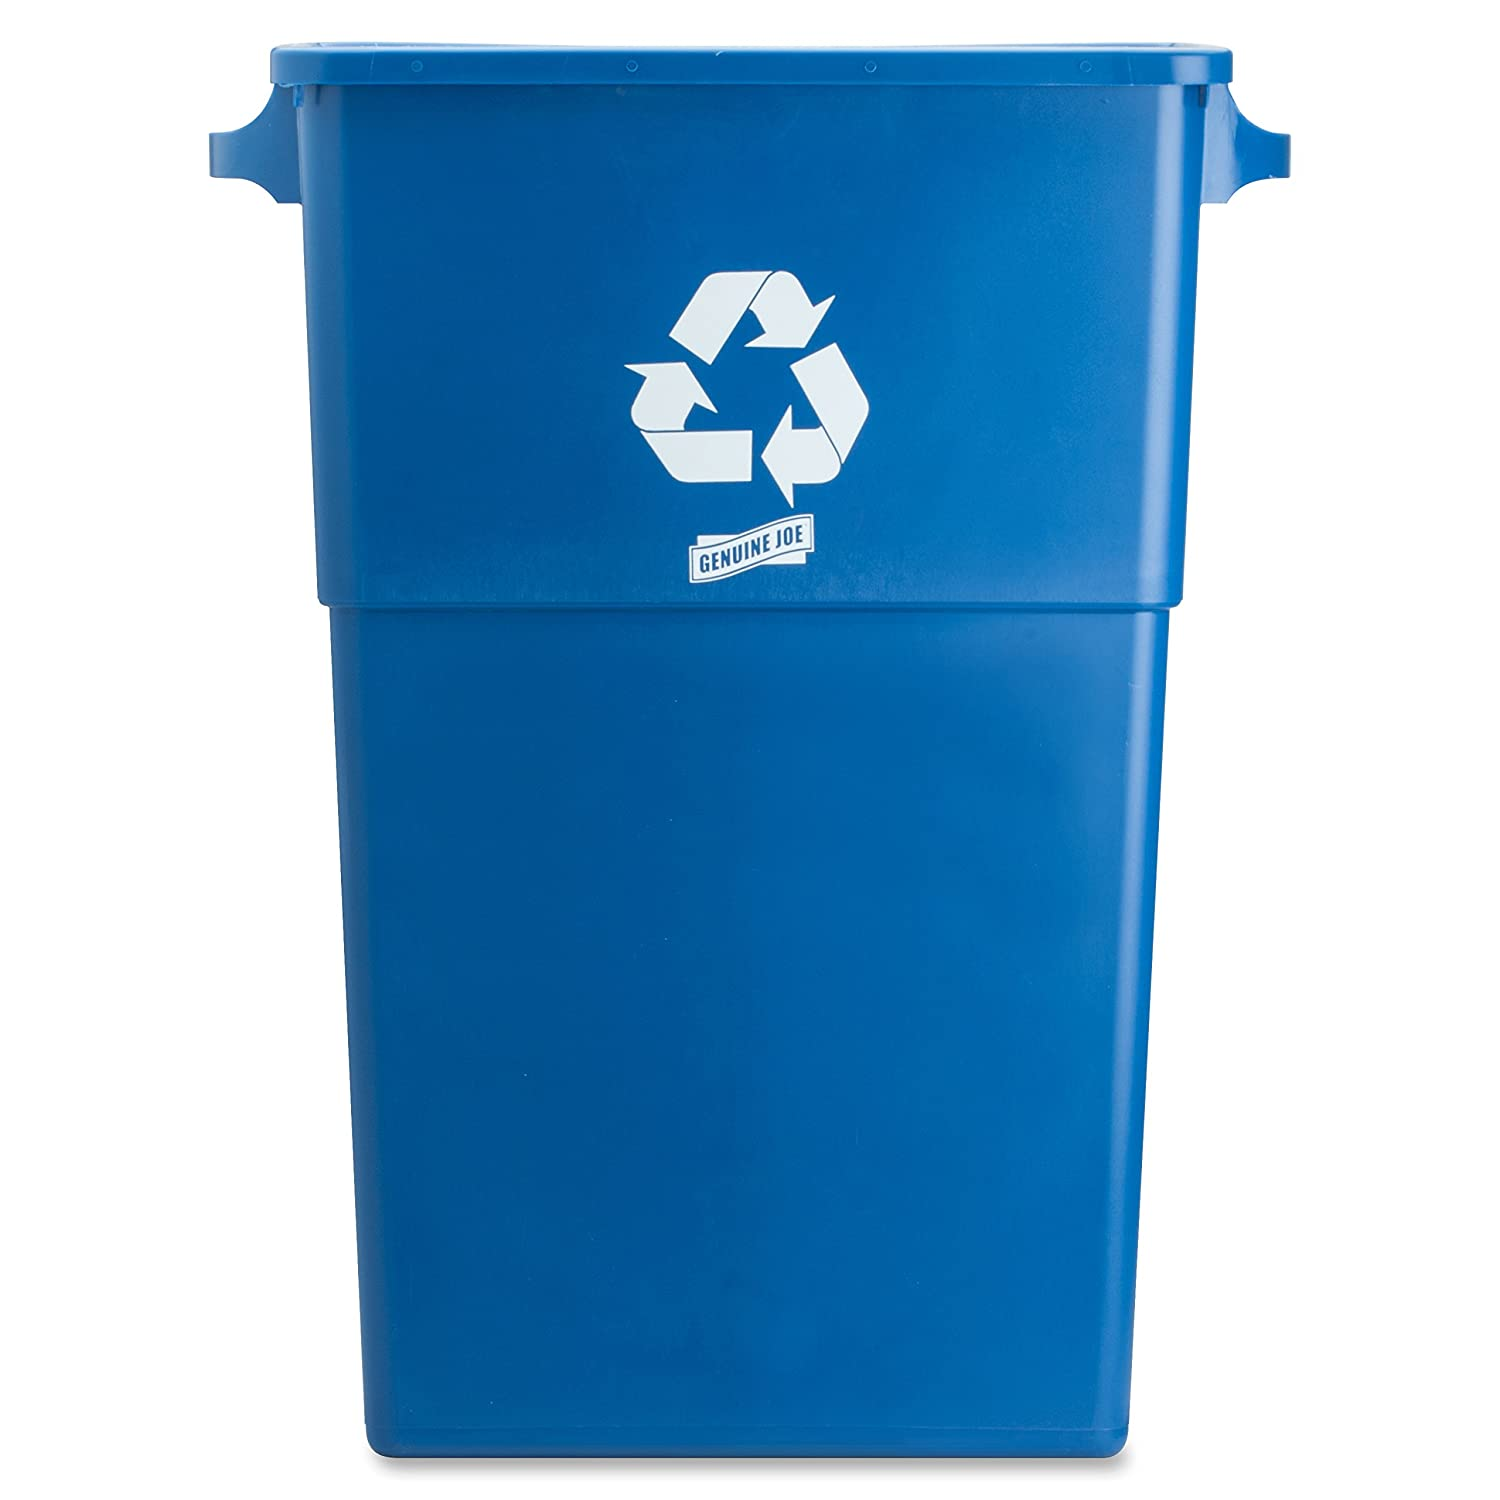 Recycle containers for home use - Amazon Com Genuine Joe Gjo57258 Recycling Rectangular Container 28 Gallon Capacity 22 1 2 Width X 30 Height X 11 Depth Blue Industrial Scientific